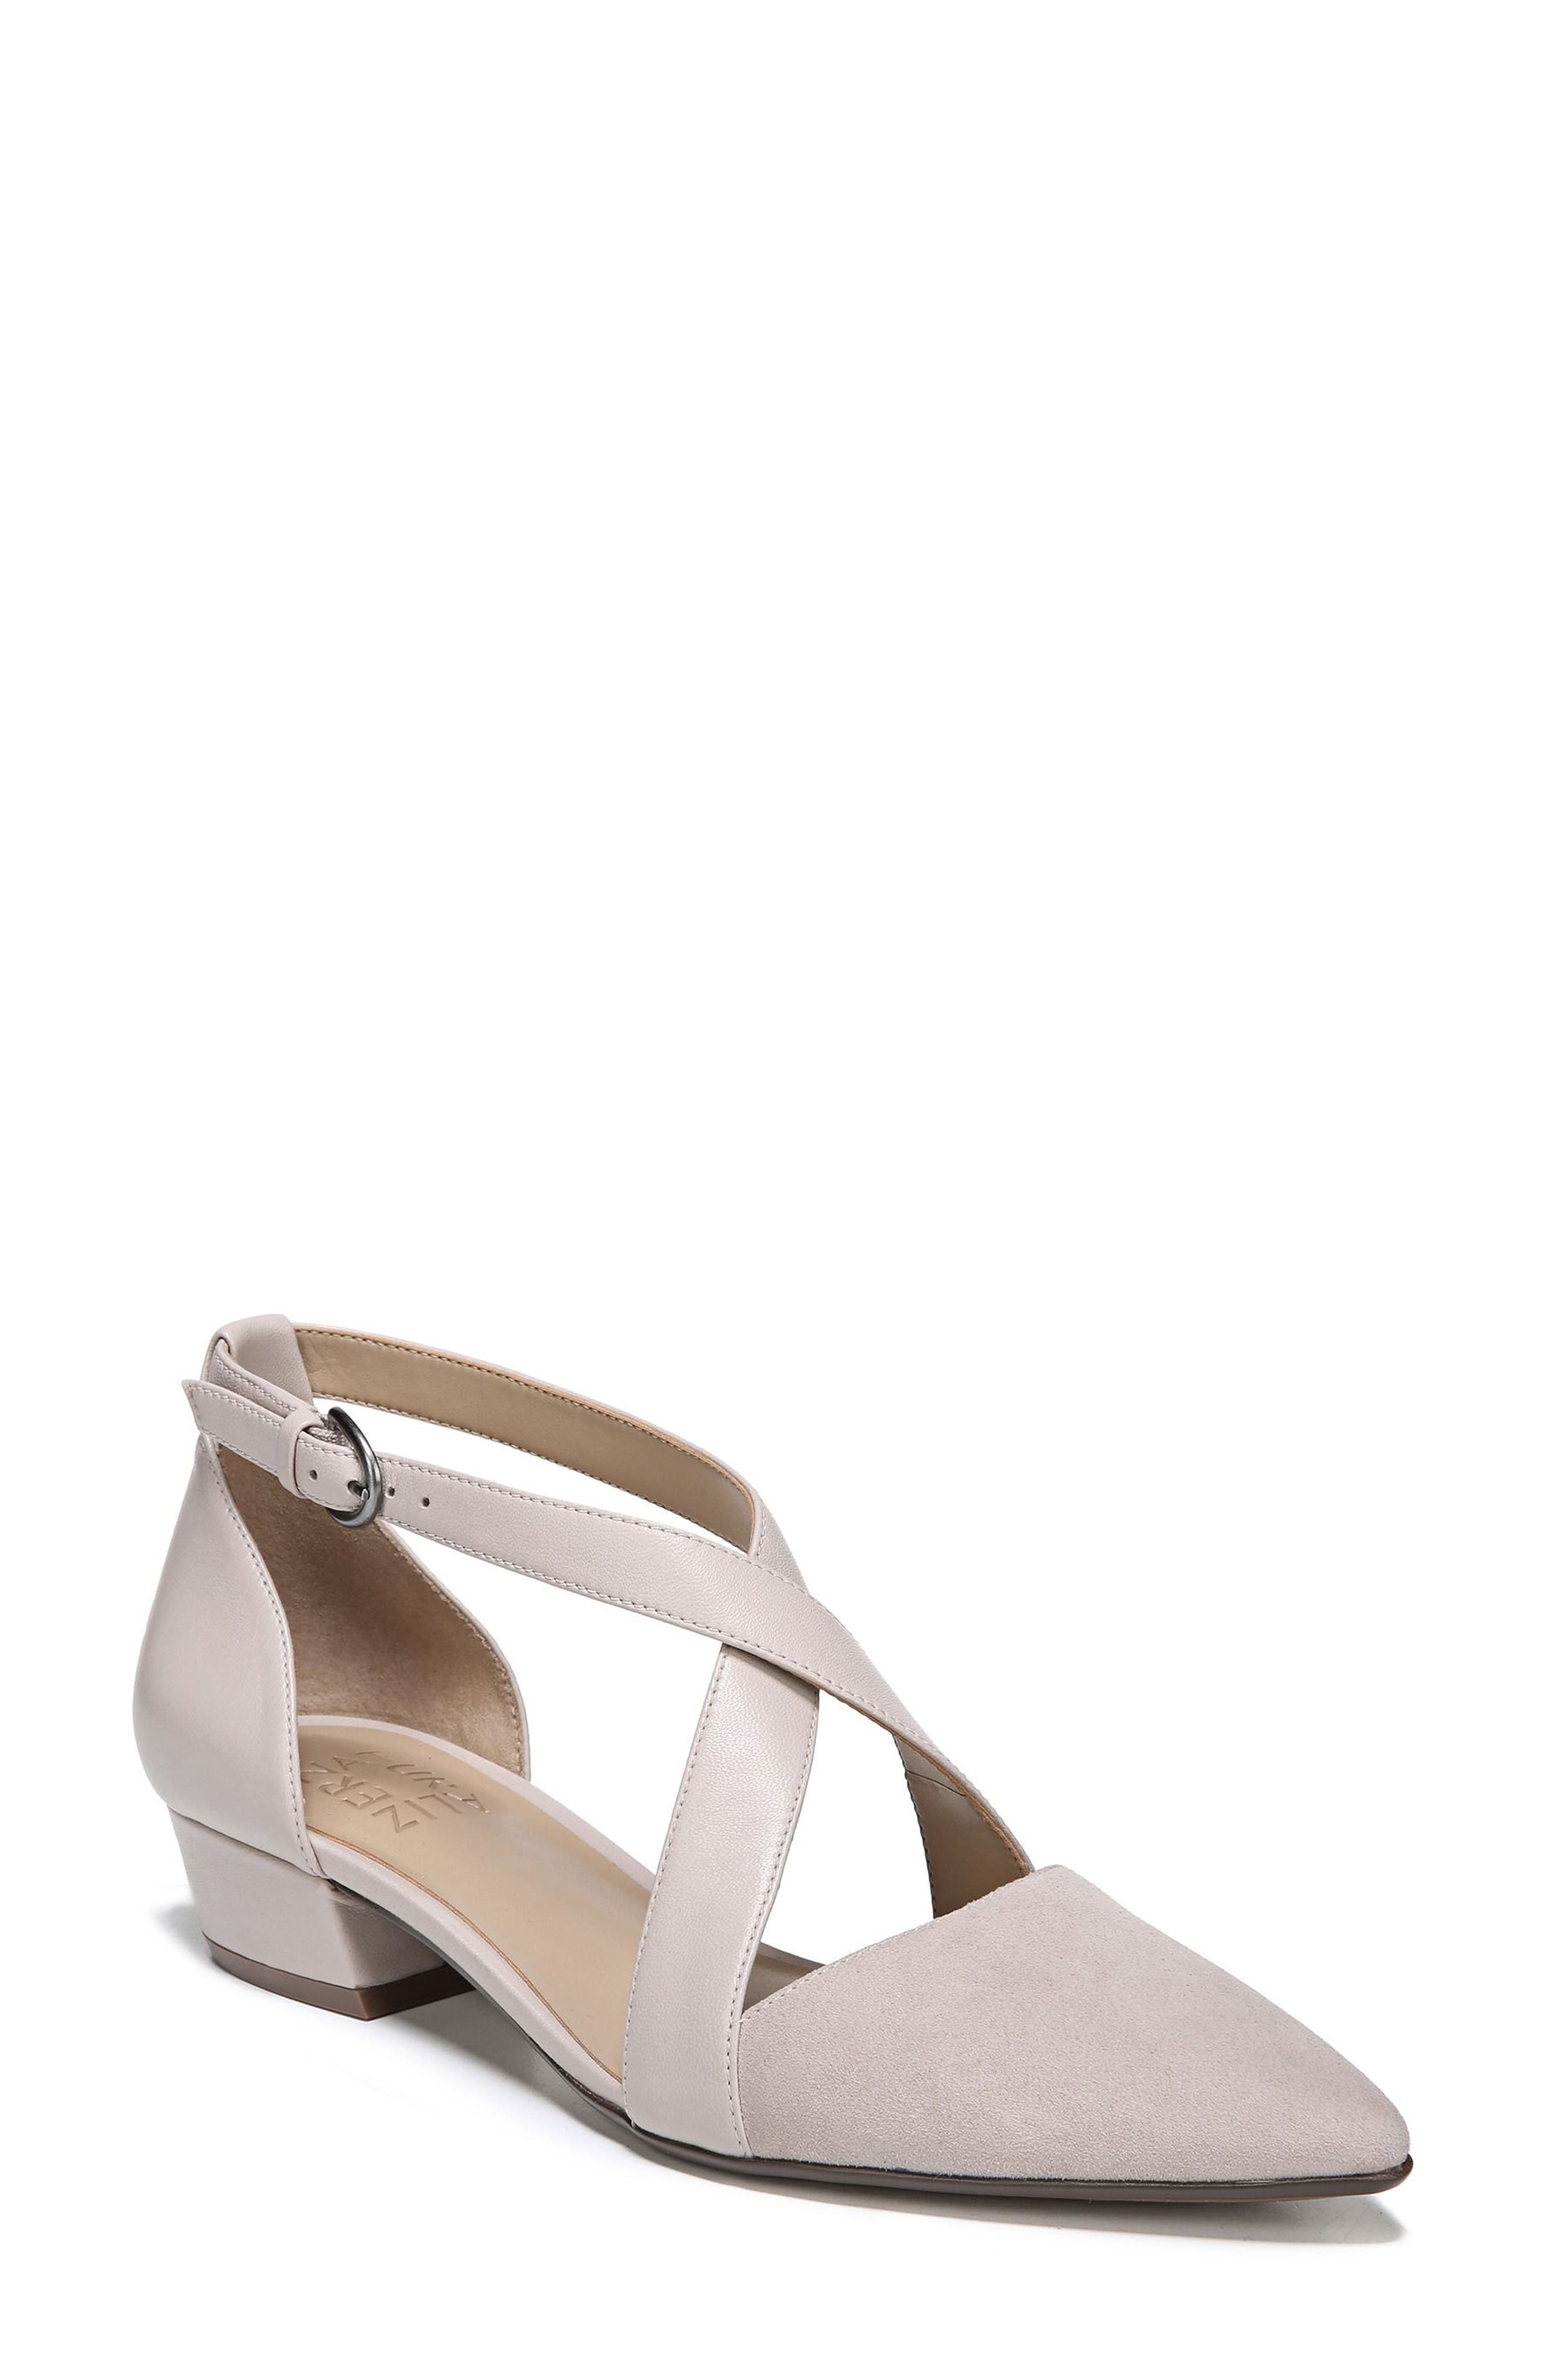 Naturalizer Blakely Pump, Grey